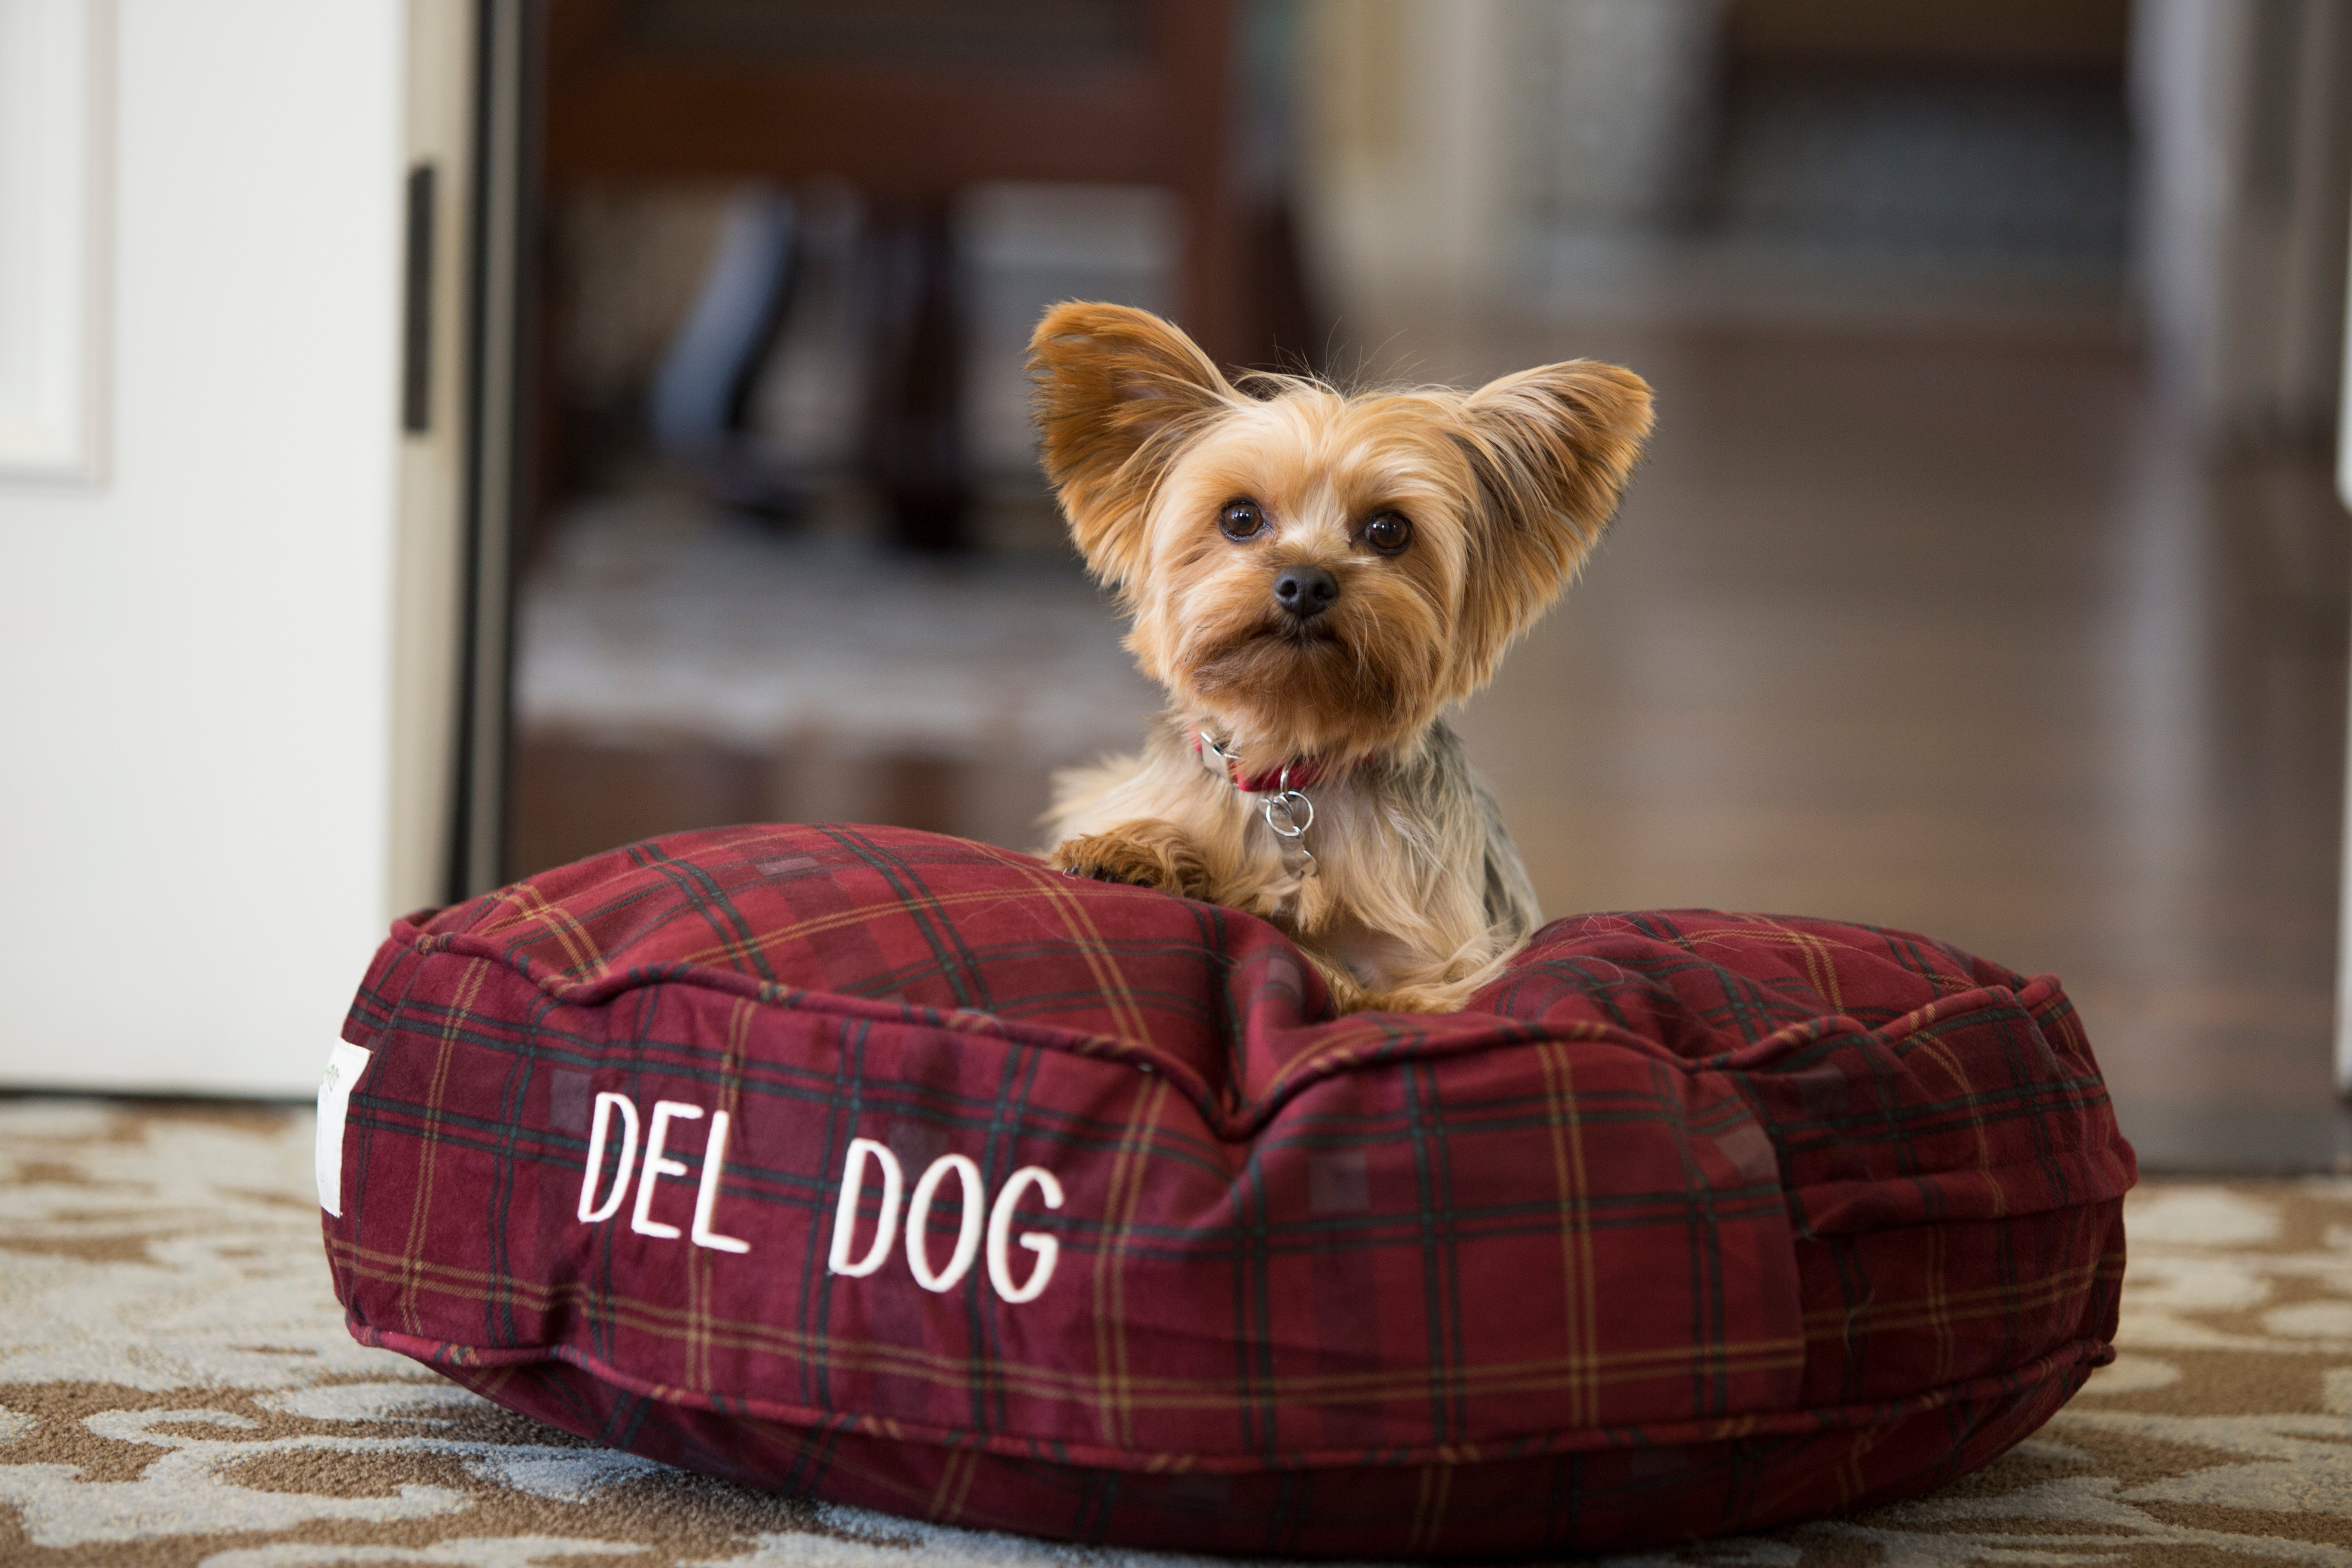 A yorkie dog sits on a maroon pillow bed that says